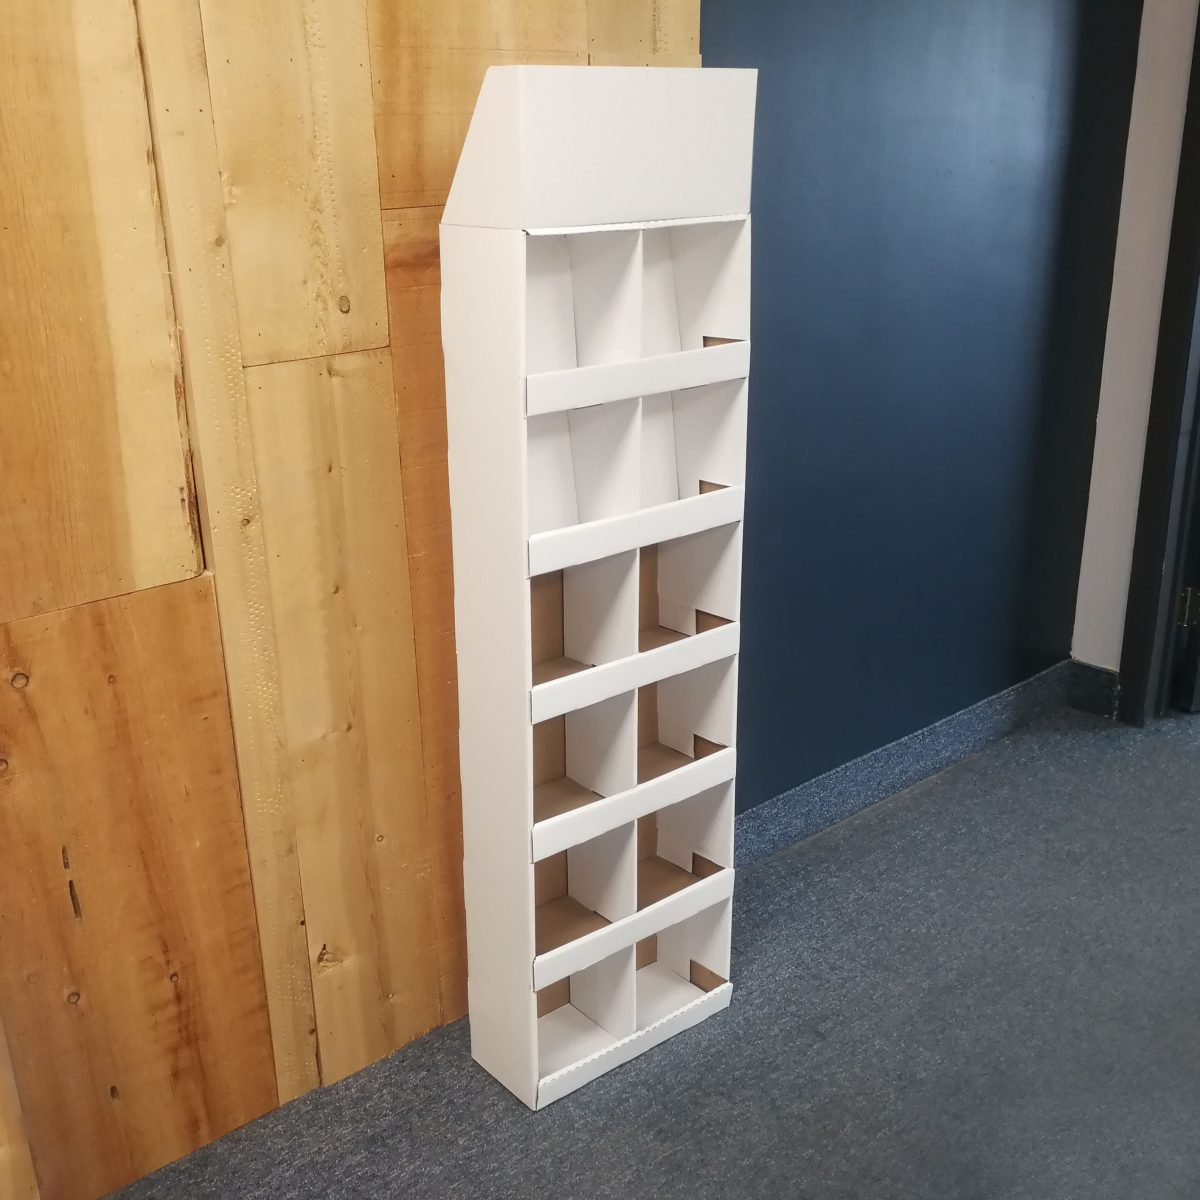 Cardboard Sidekick designed to be wall mounted, with 5 shelves and a separator in the middle (12 slots) and an optional header - white